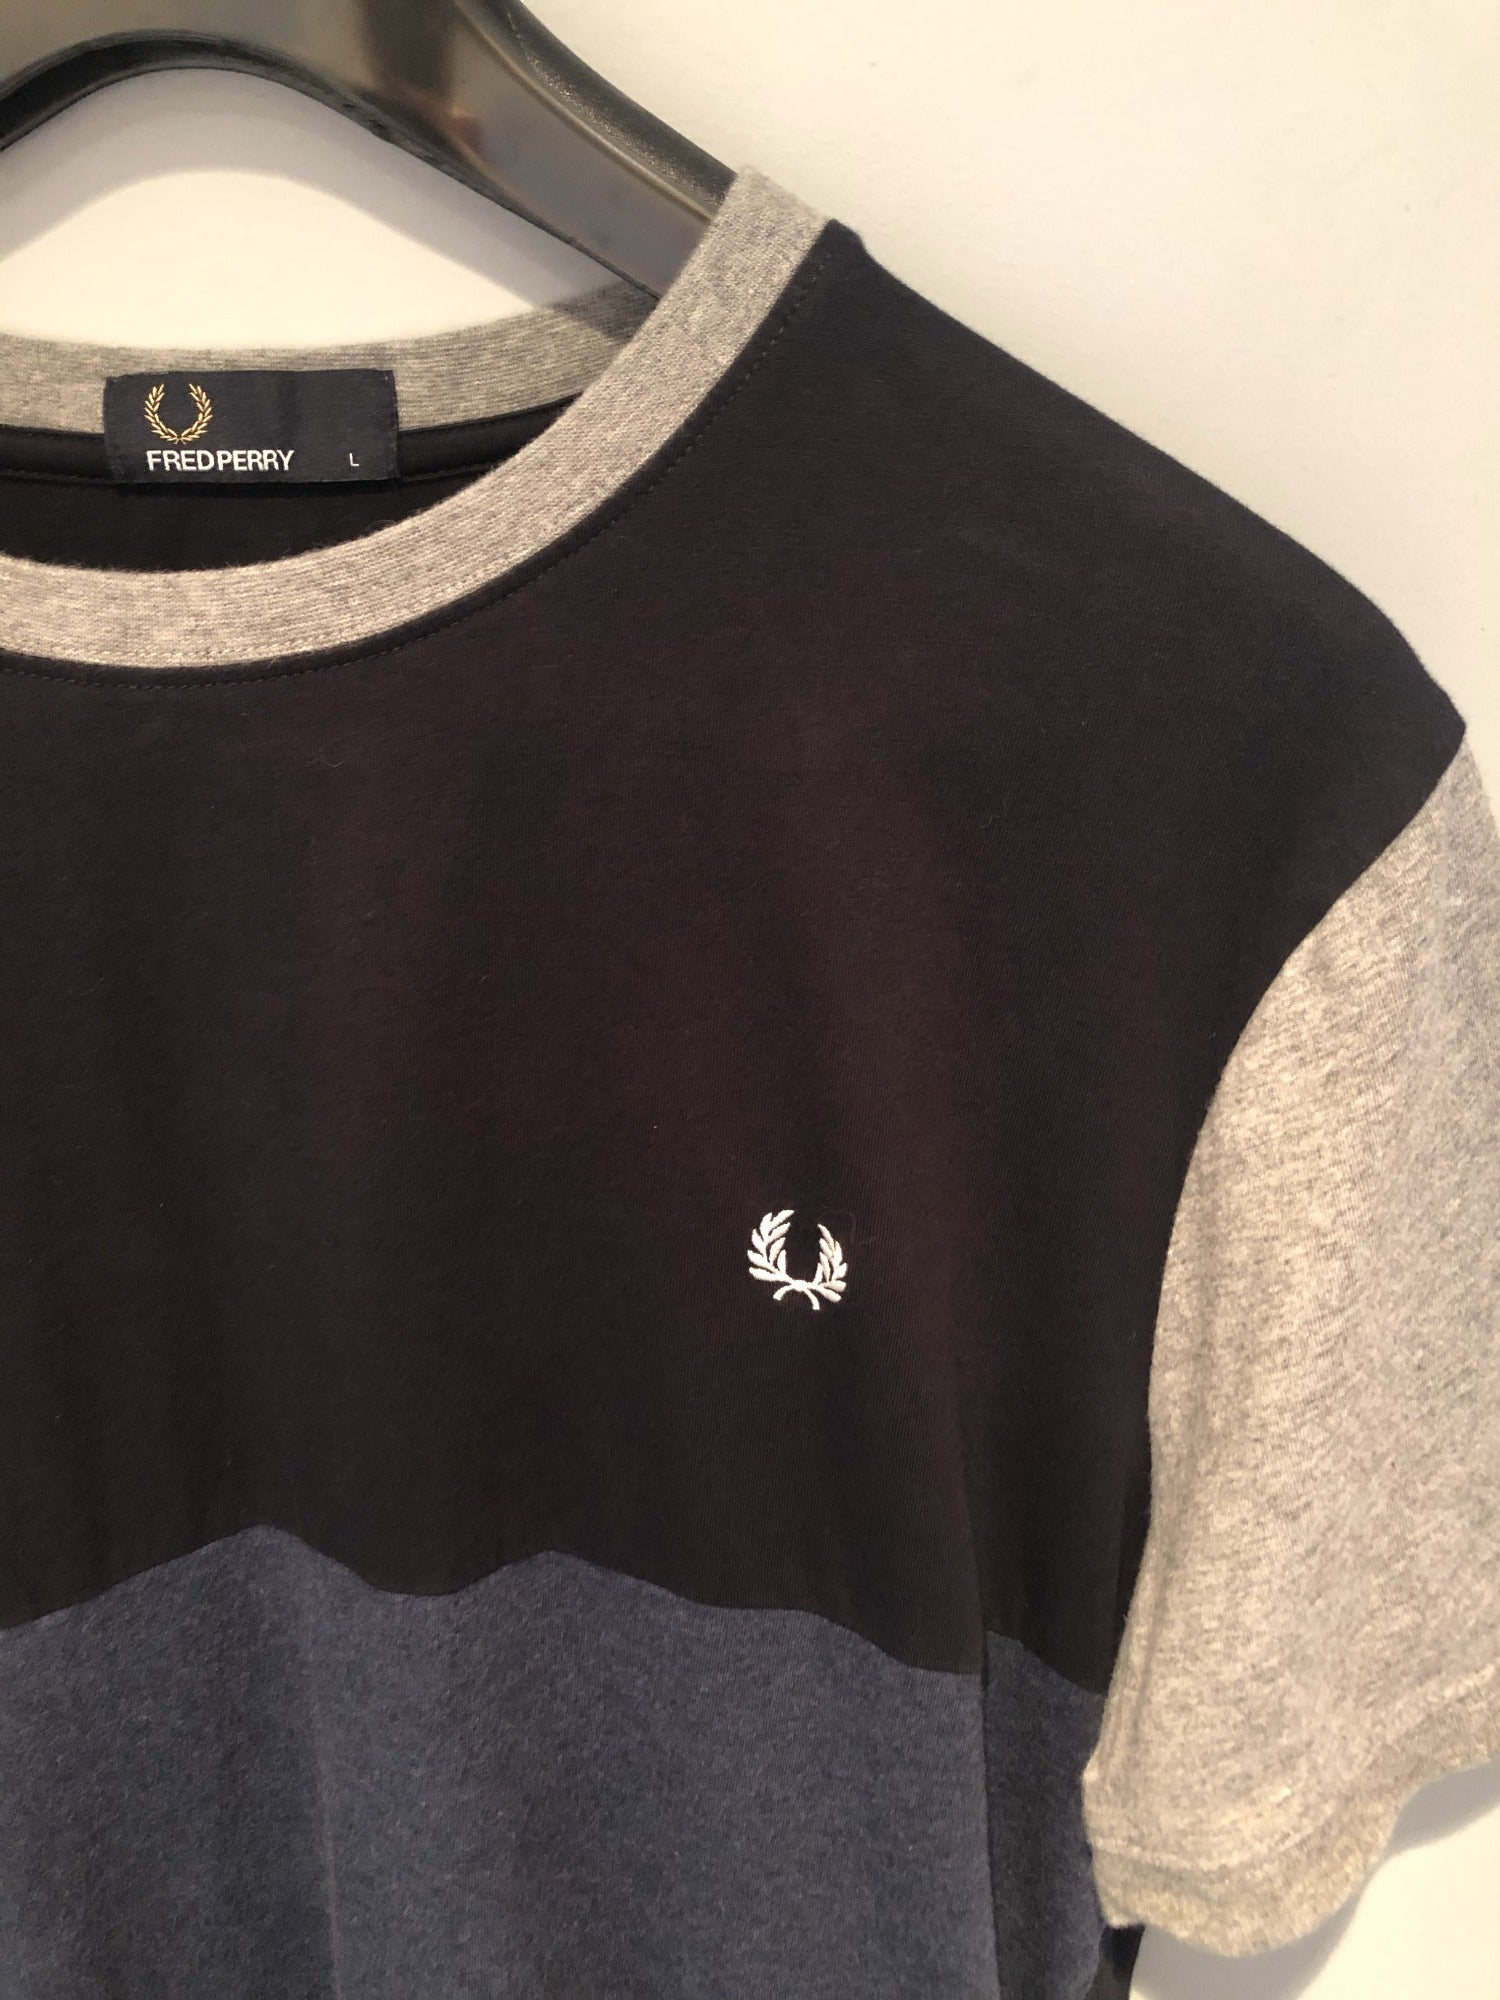 Fred Perry Block Colour T-Shirt Navy, Blue and Grey - Size L - MOD Clothing - Urban Village Vintage